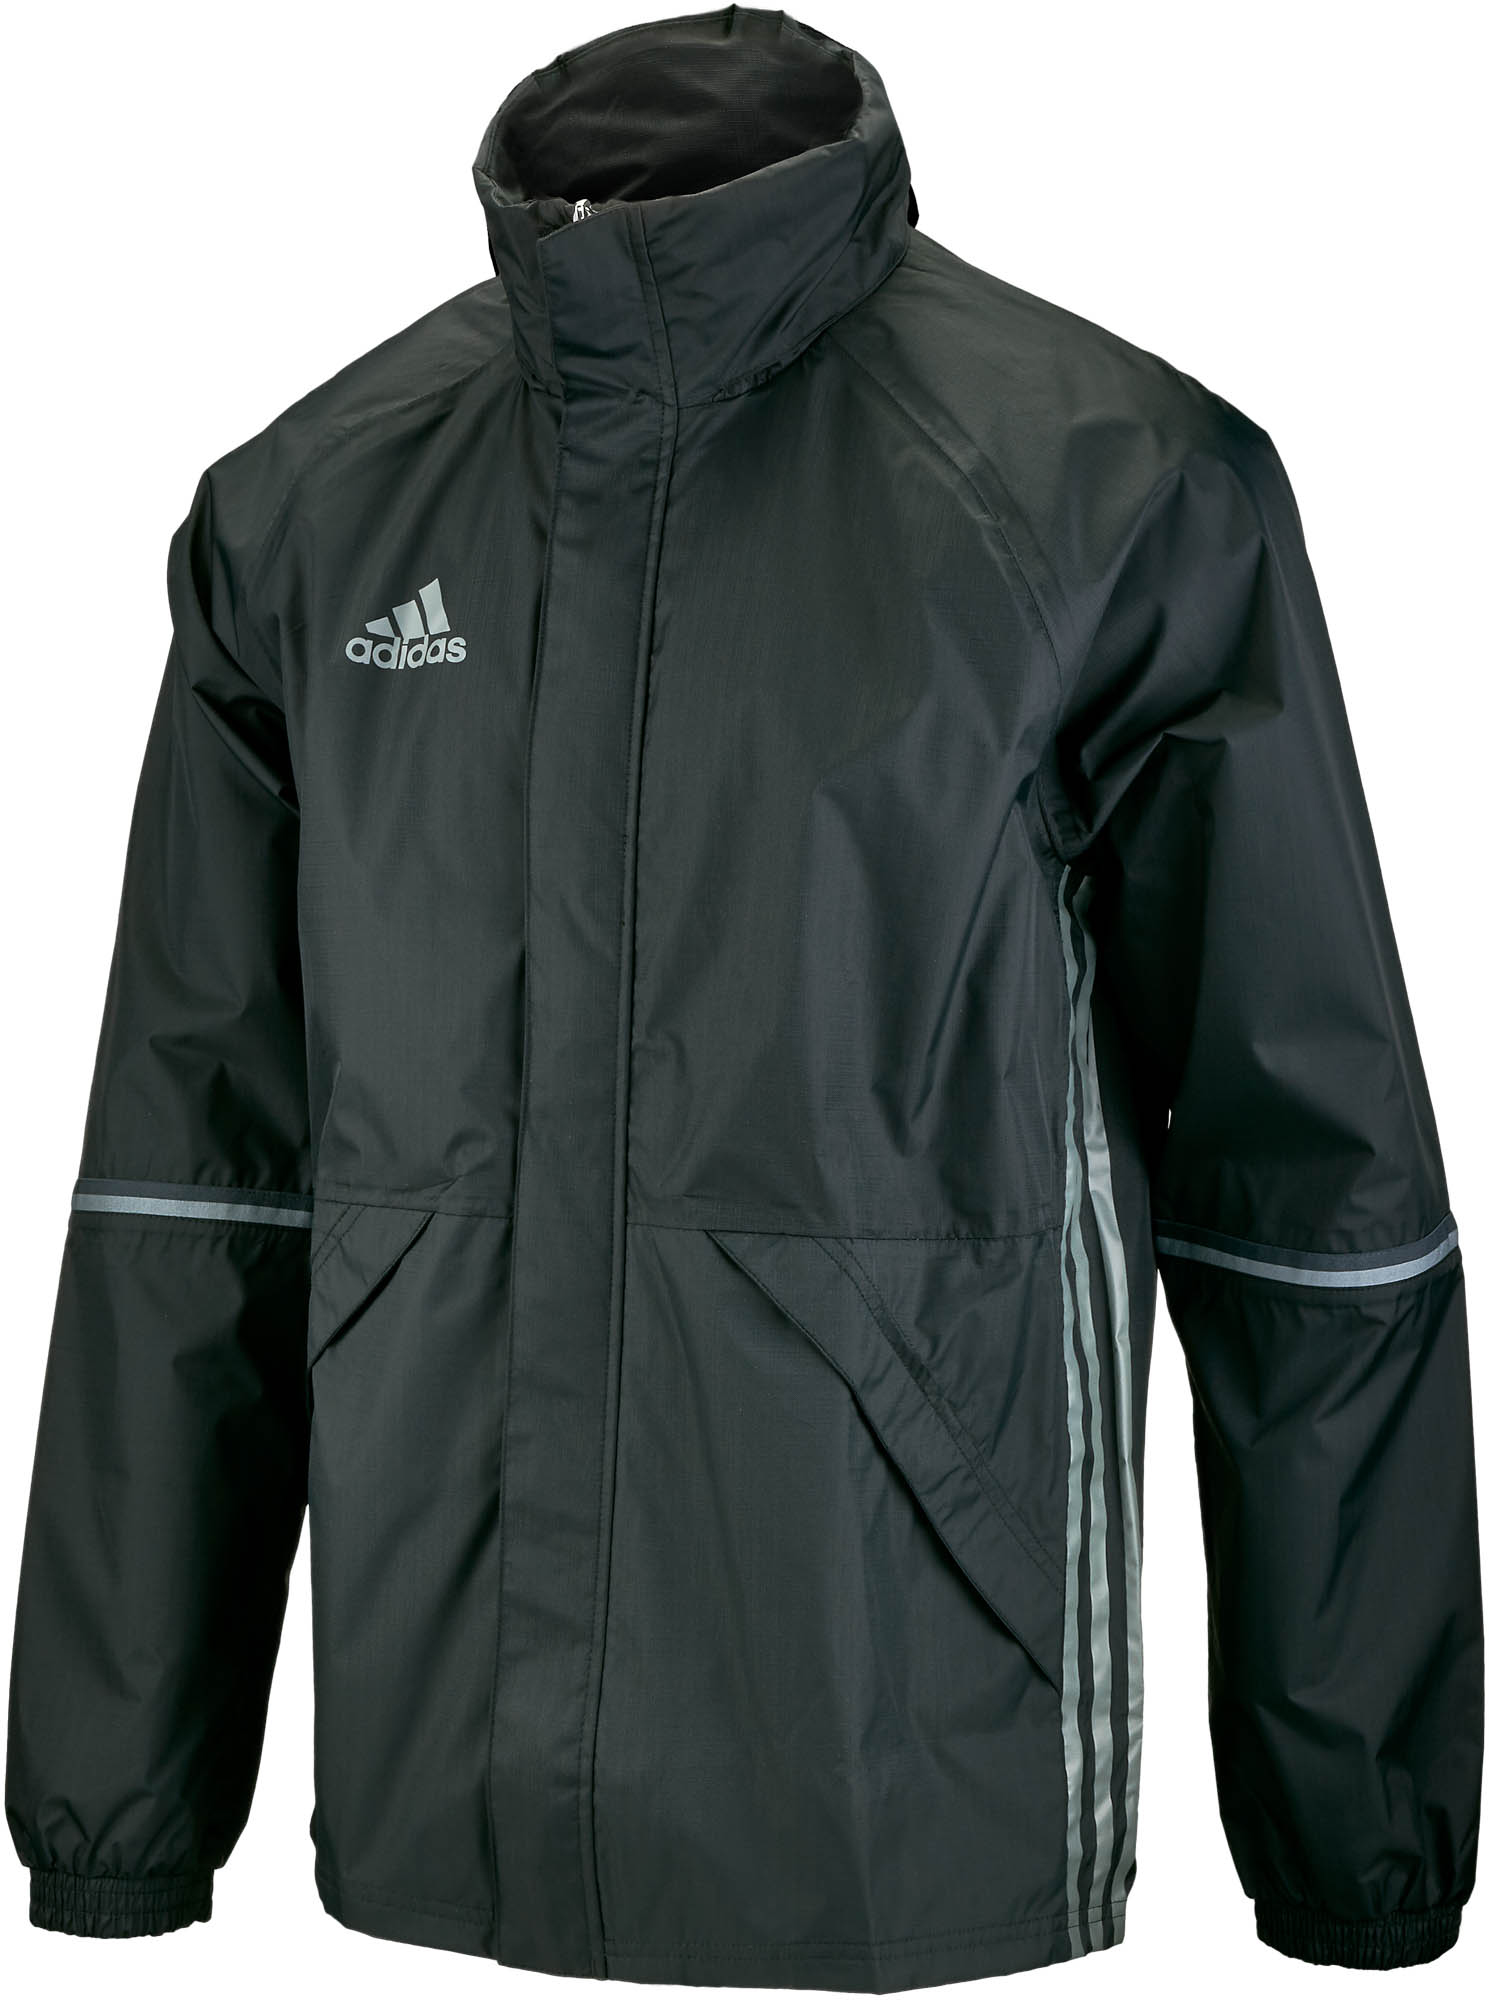 0b93a02aa984 adidas Condivo 16 Rain Jacket (seam sealed) – Black Vista Grey